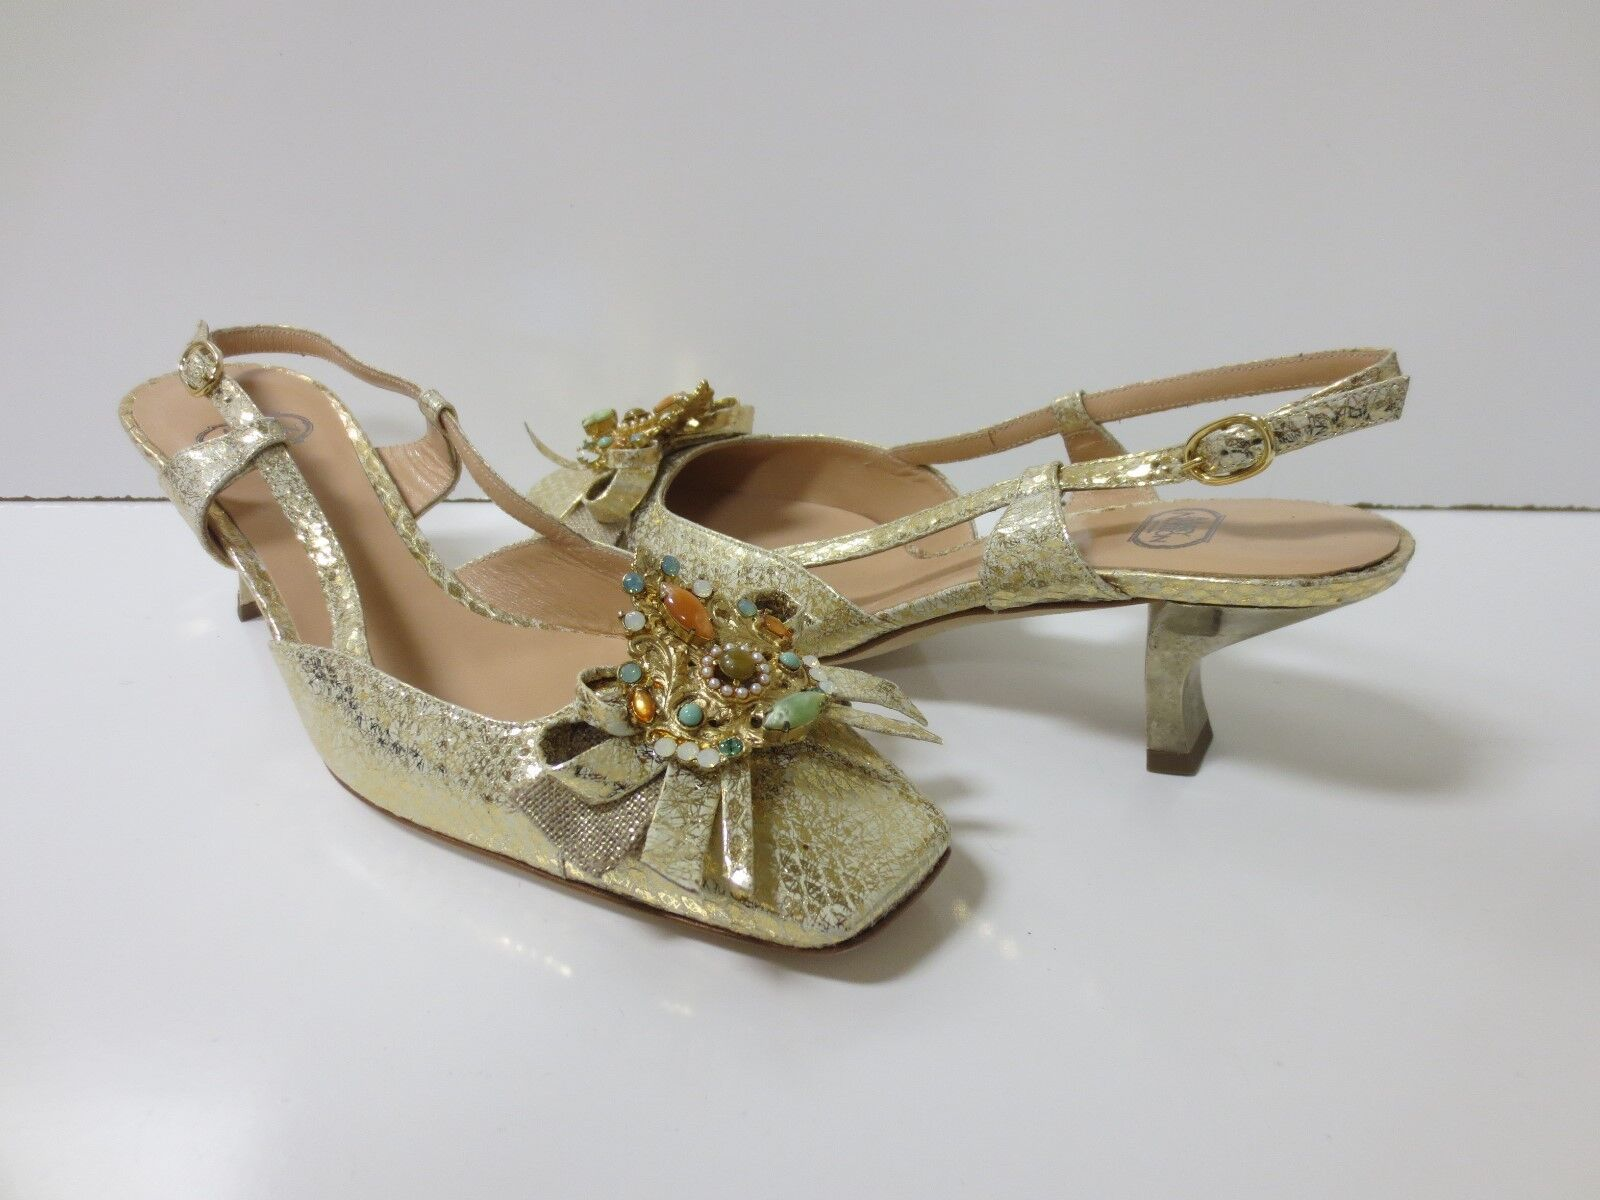 MARY NORTON gold Leather Slingback Heels Stones Crystals Bow Vamp NEW 36